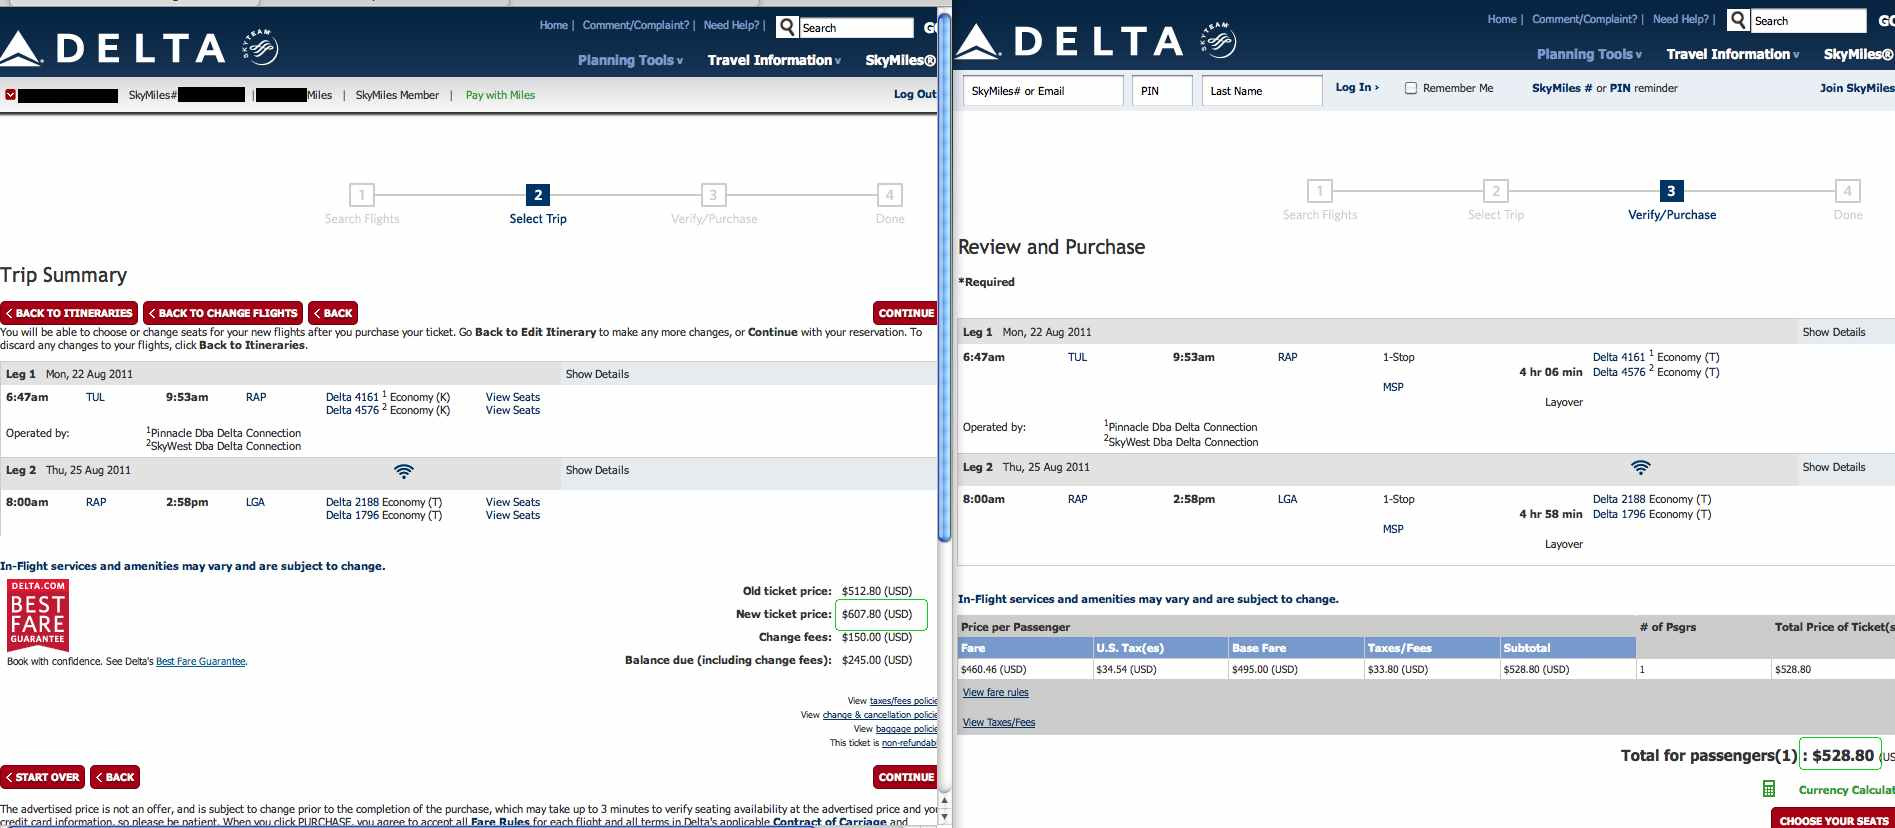 Delta overcharge for SkyMiles members